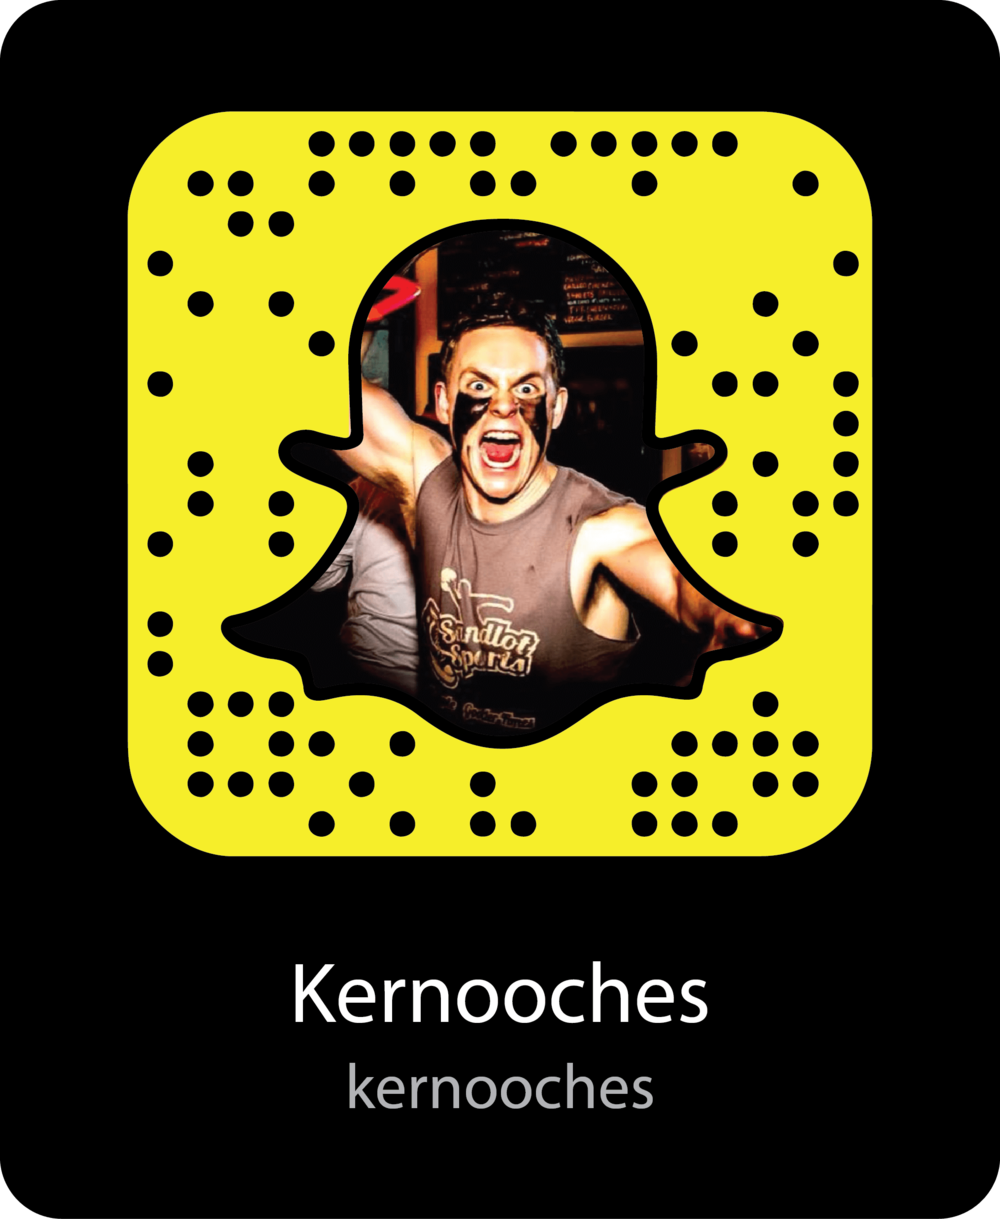 kernooches-comedians-snapchat-snapcode